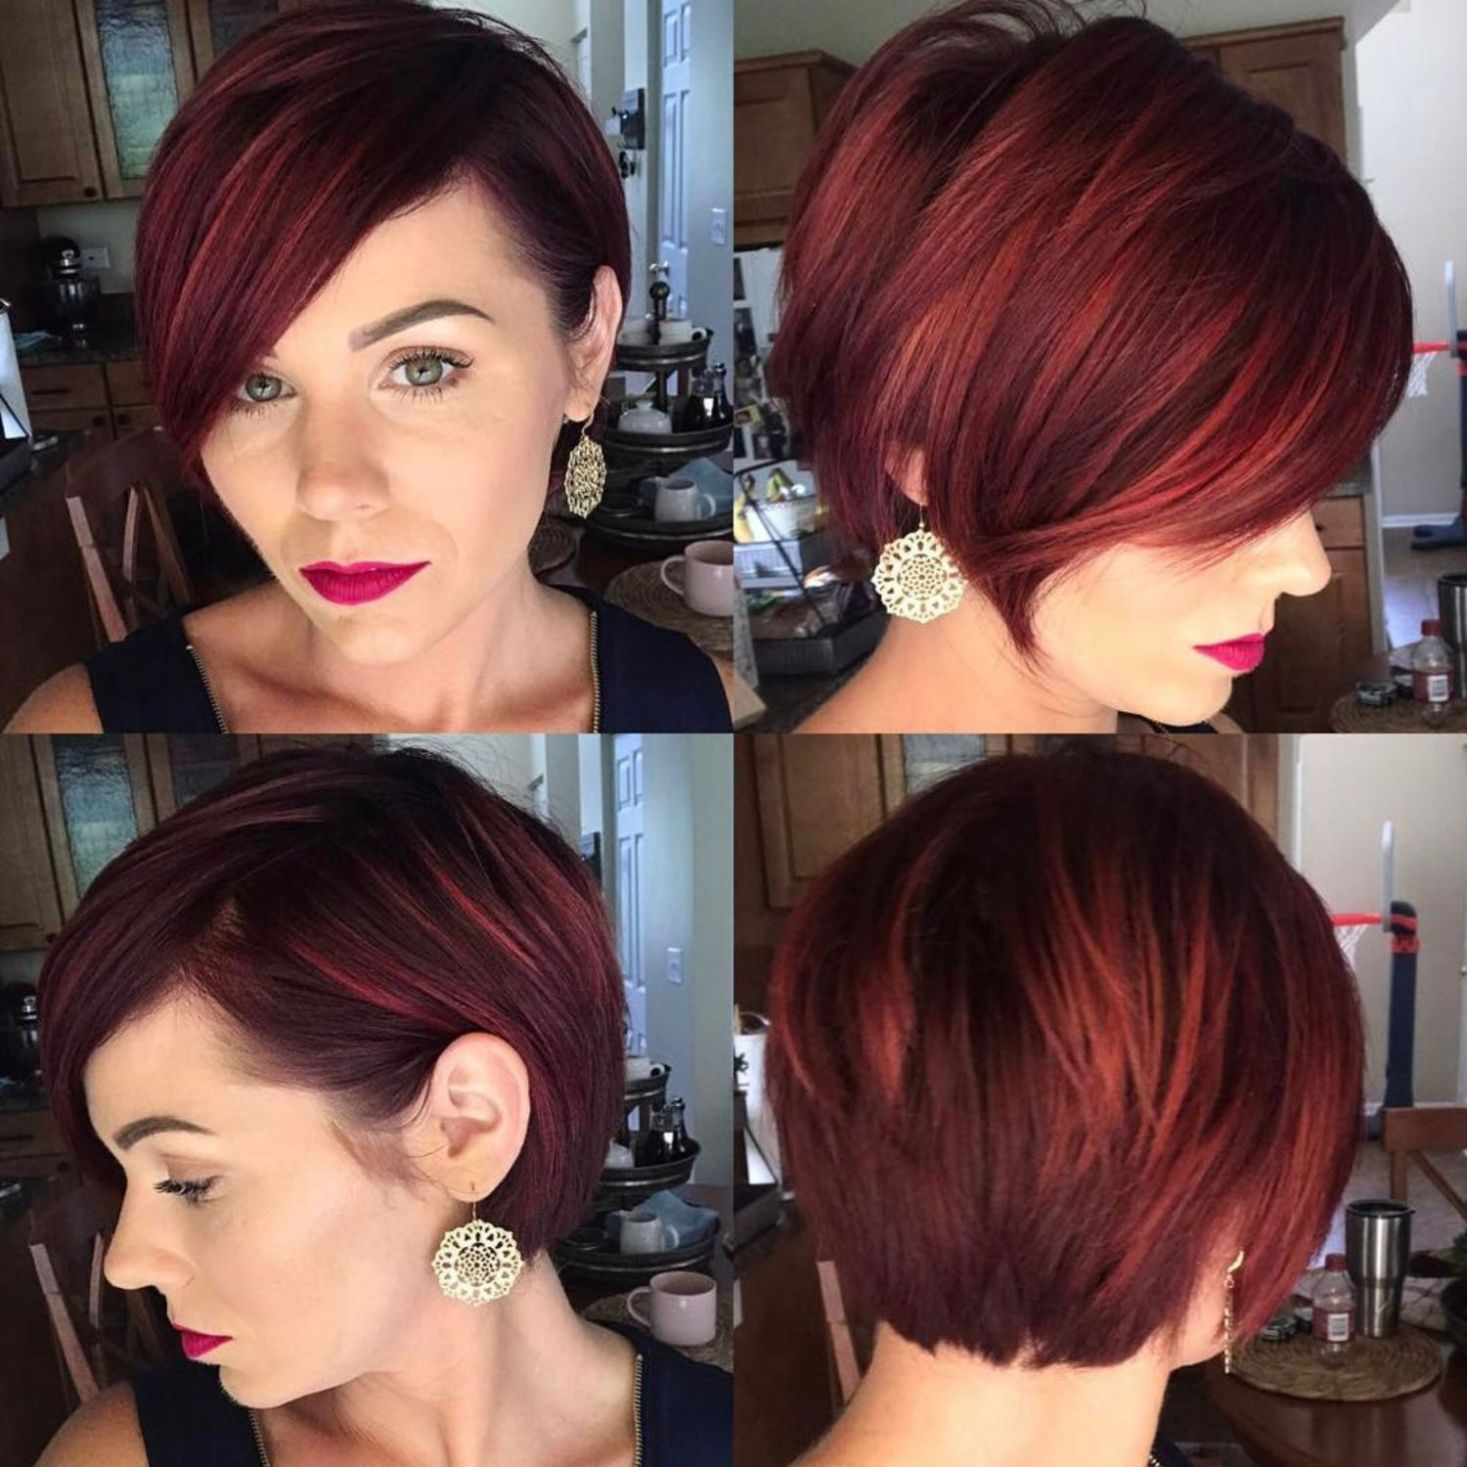 short shaggy spiky edgy pixie cuts and hairstyles color